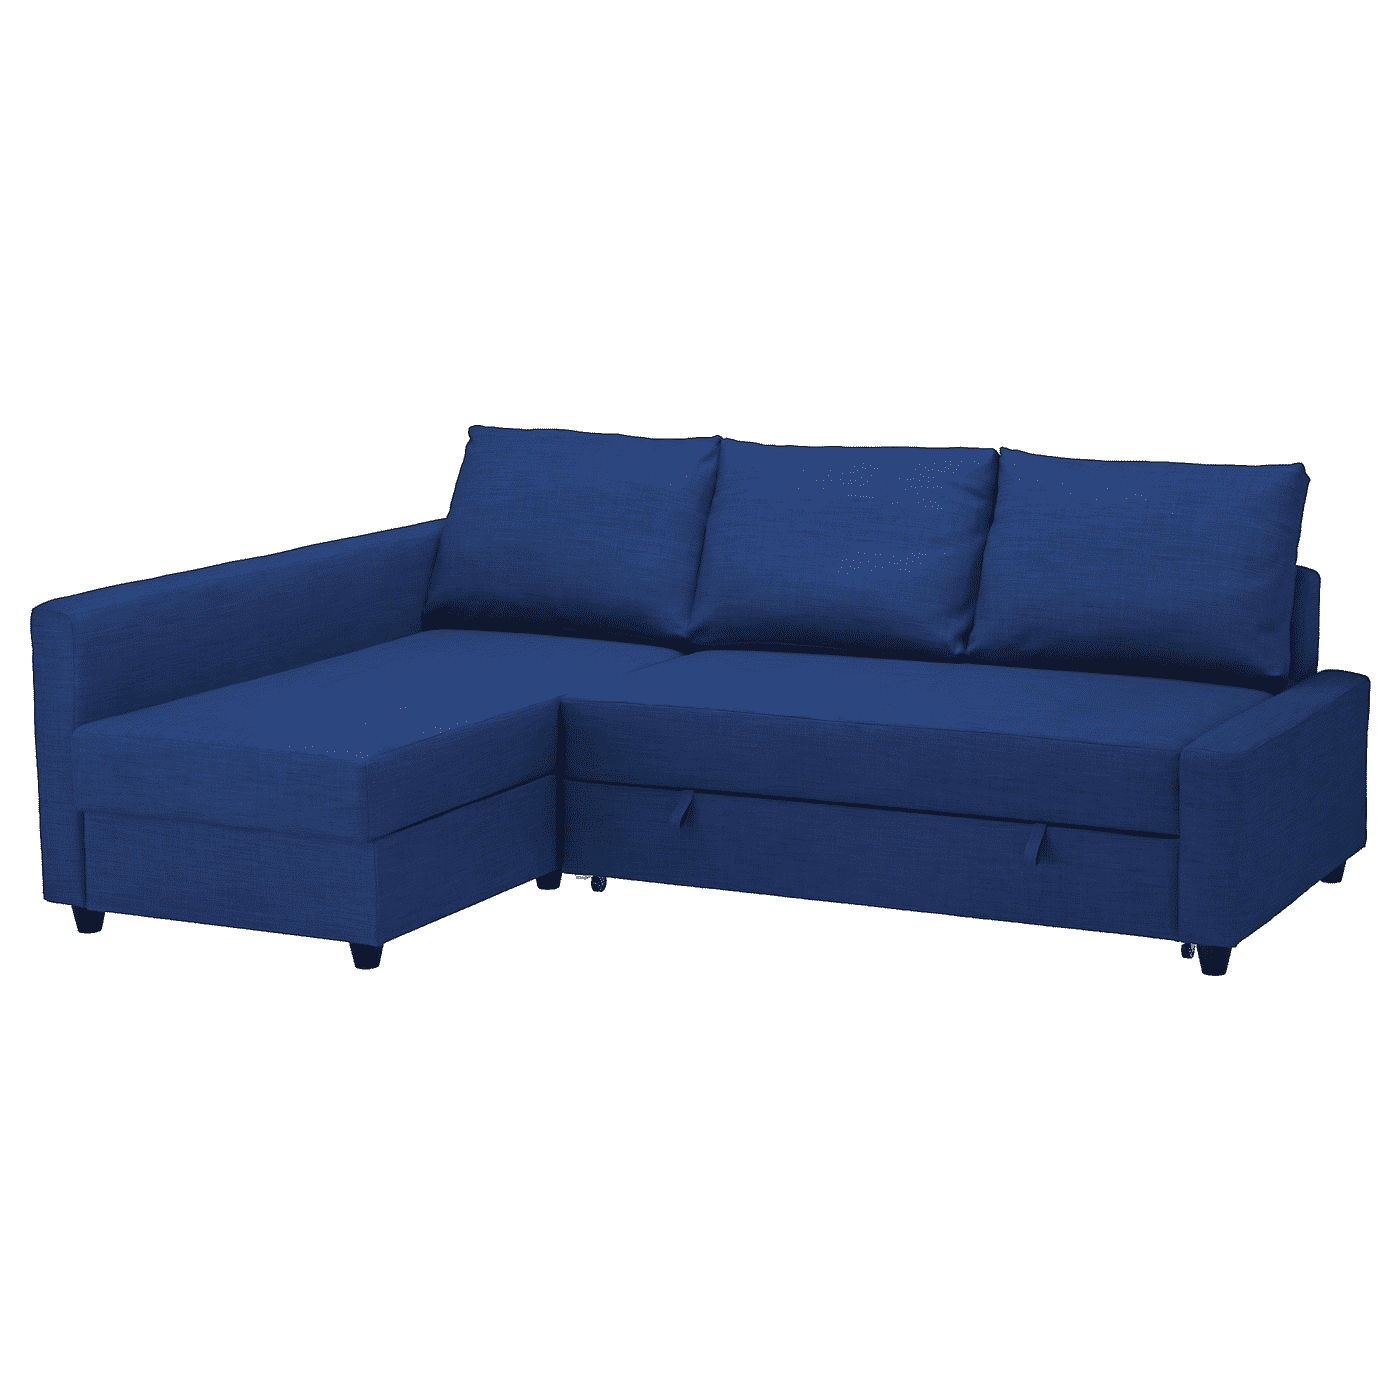 - 20 Best IKEA Sofas Review 2020 - IKEA Product Reviews